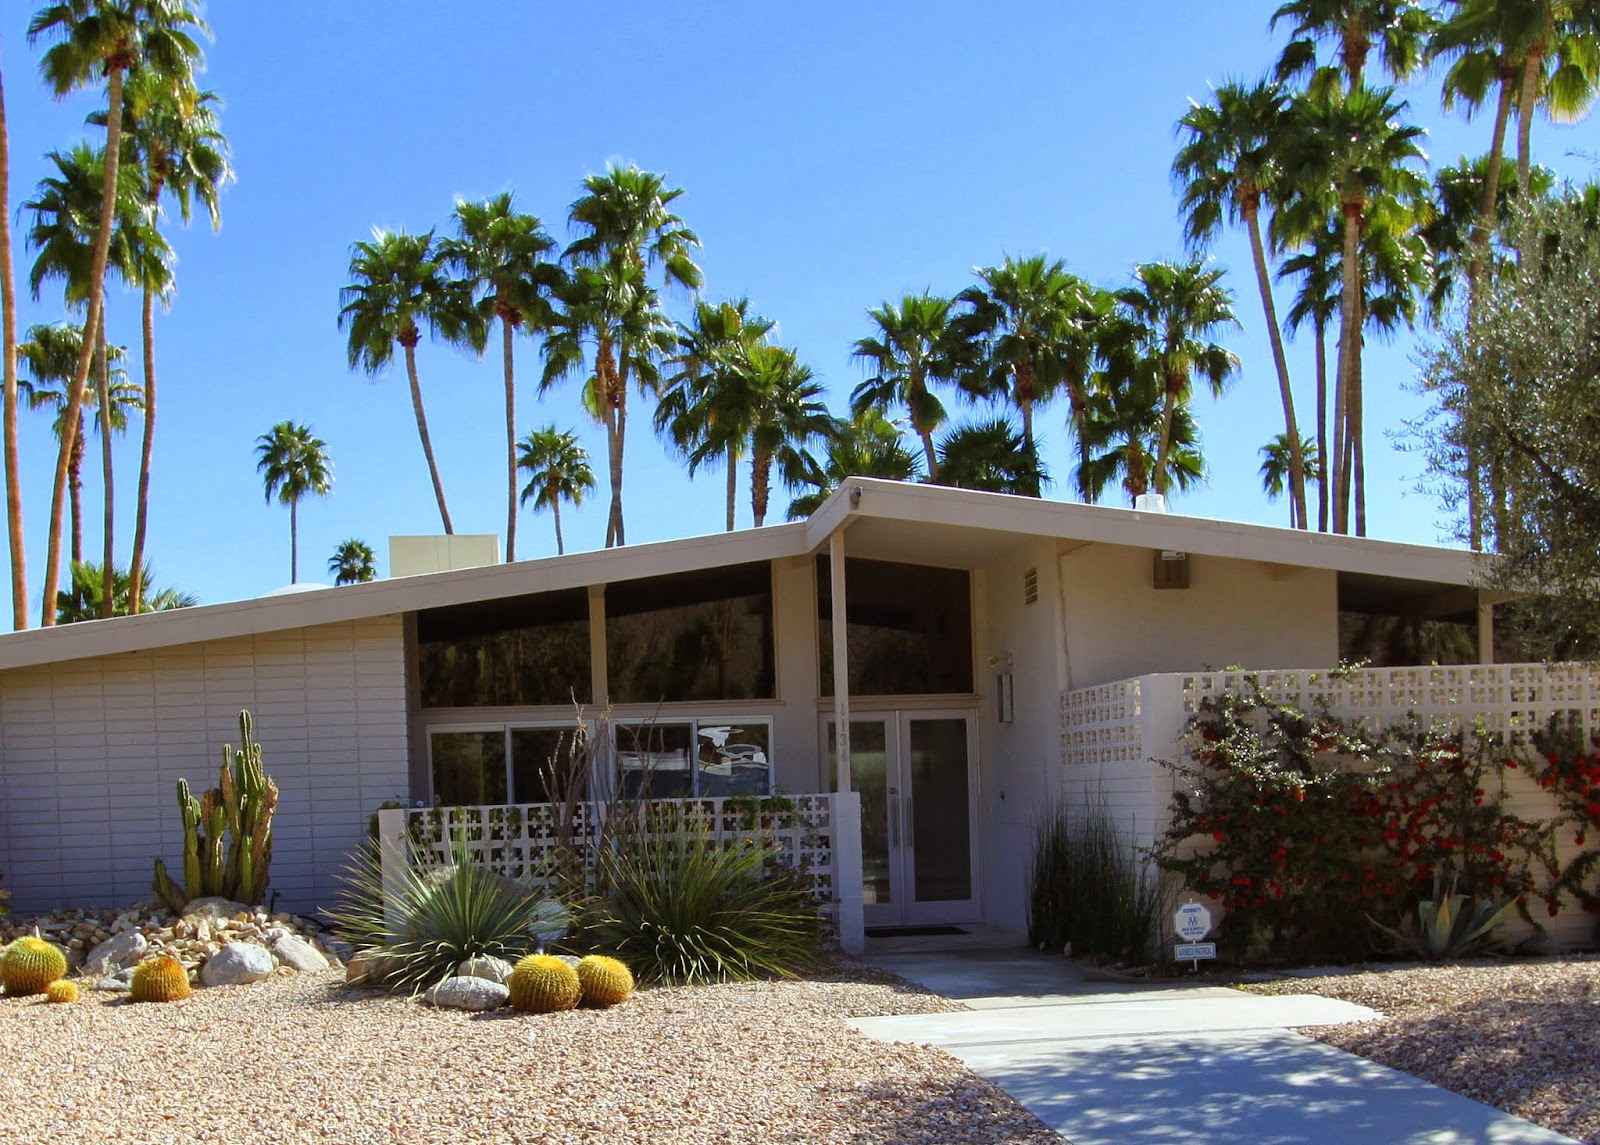 Walking tour of celebrity homes in palm springs